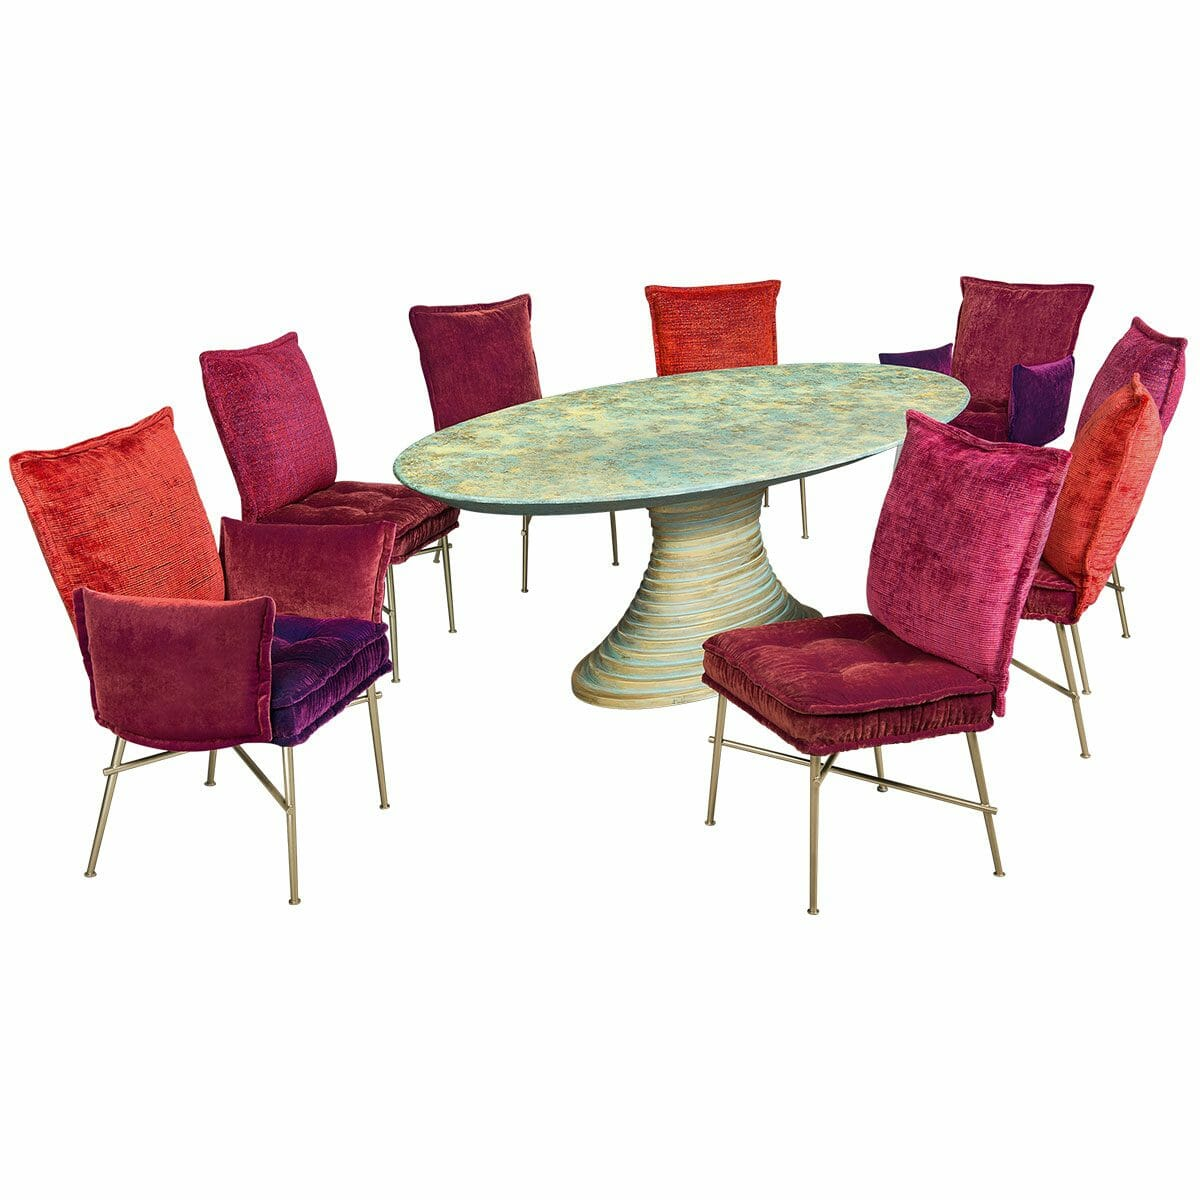 Bretz Essgruppe NOFRETETE SET 1 in berry Mix